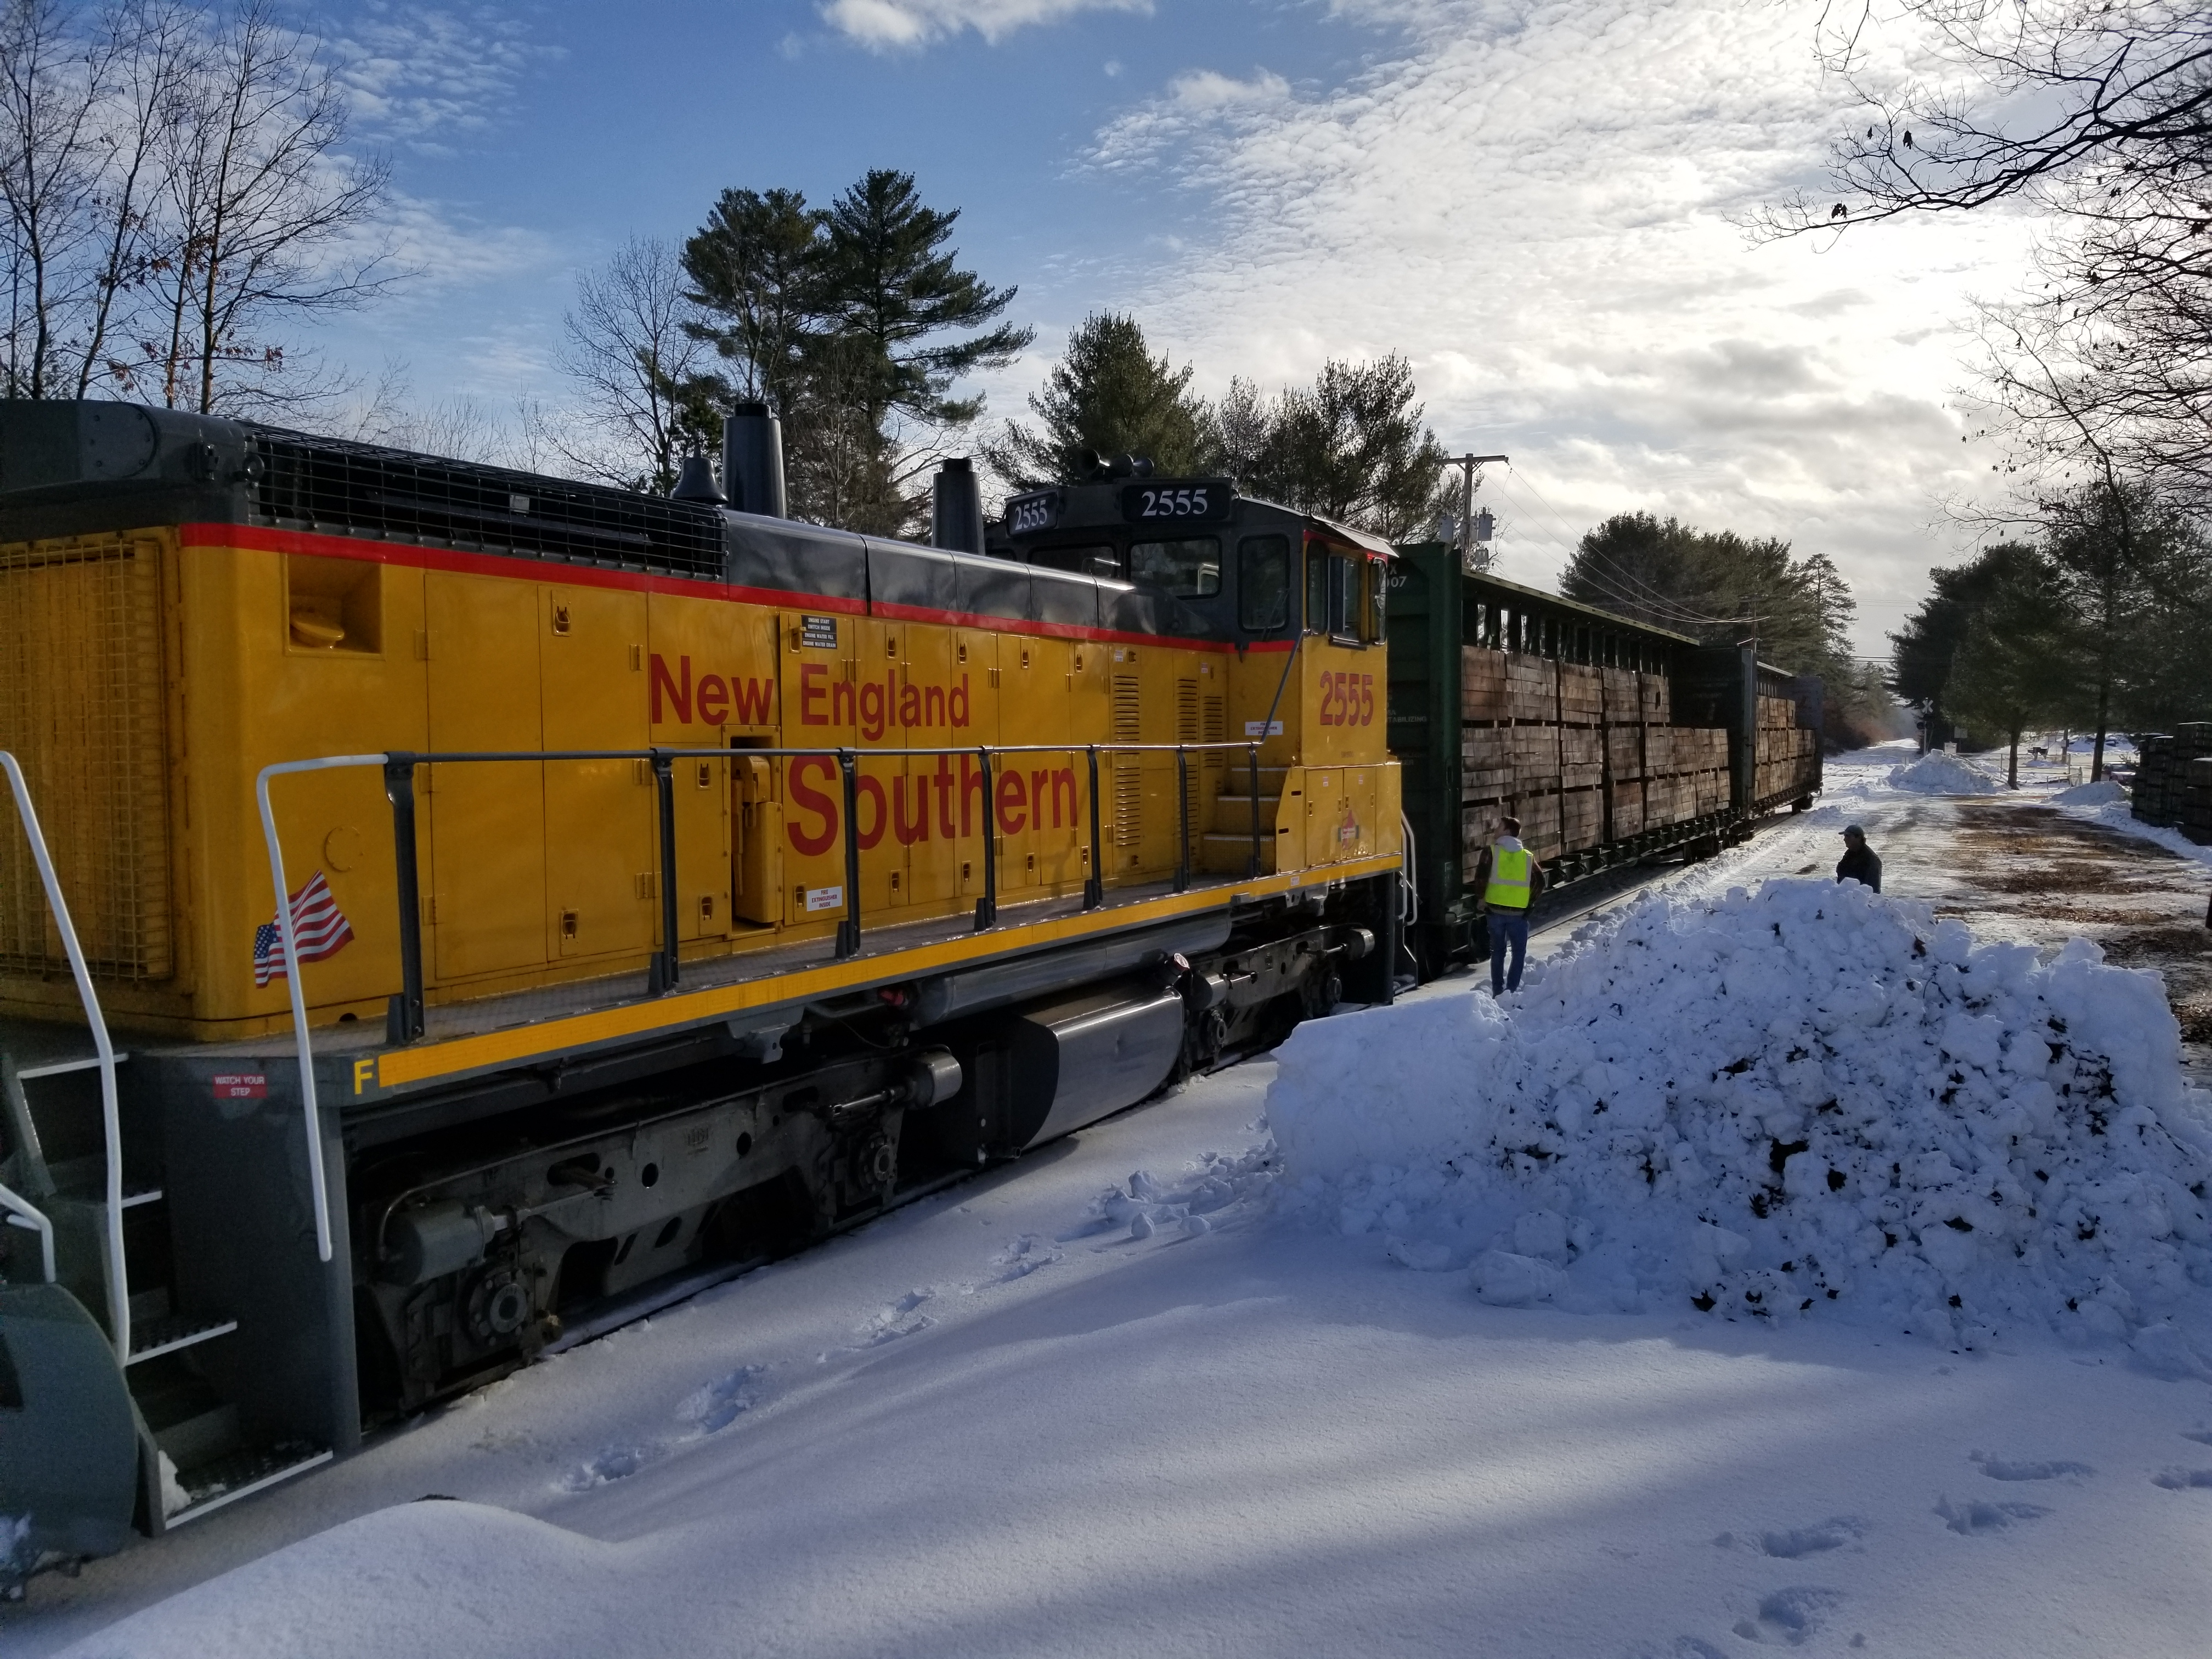 Tourism Railroads See Double Digit Growth In 2019